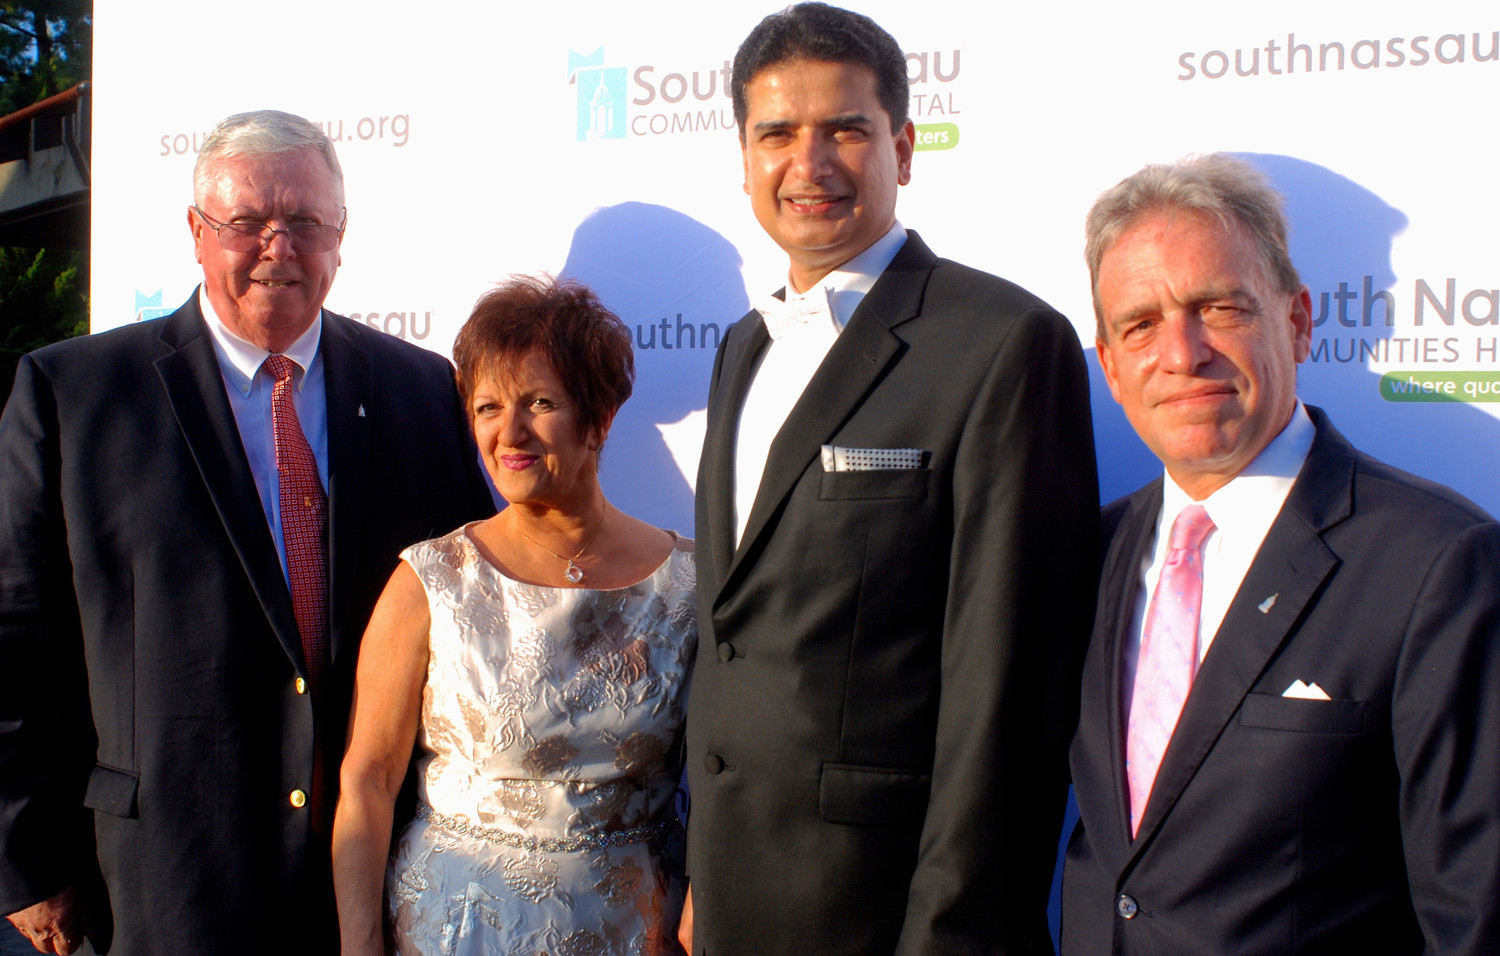 Richard Murphy, left, the South Nassau Communities Hospital president and chief executive officer; nurse Lori Edelman, recipient of the Cupola Award and director of patient care services, emergency departments and medical-surgical units; Dr. Rajiv Datta, recipient of the Mary Pearson Award and chairman of the Department of Surgery and director of the Gertrude and Louis Feil Cancer Center; and Joe Calderone, senior vice president for communications and development. Jeffrey Feil, not pictured, chief executive officer of the Feil Organization, was the evening's honoree.